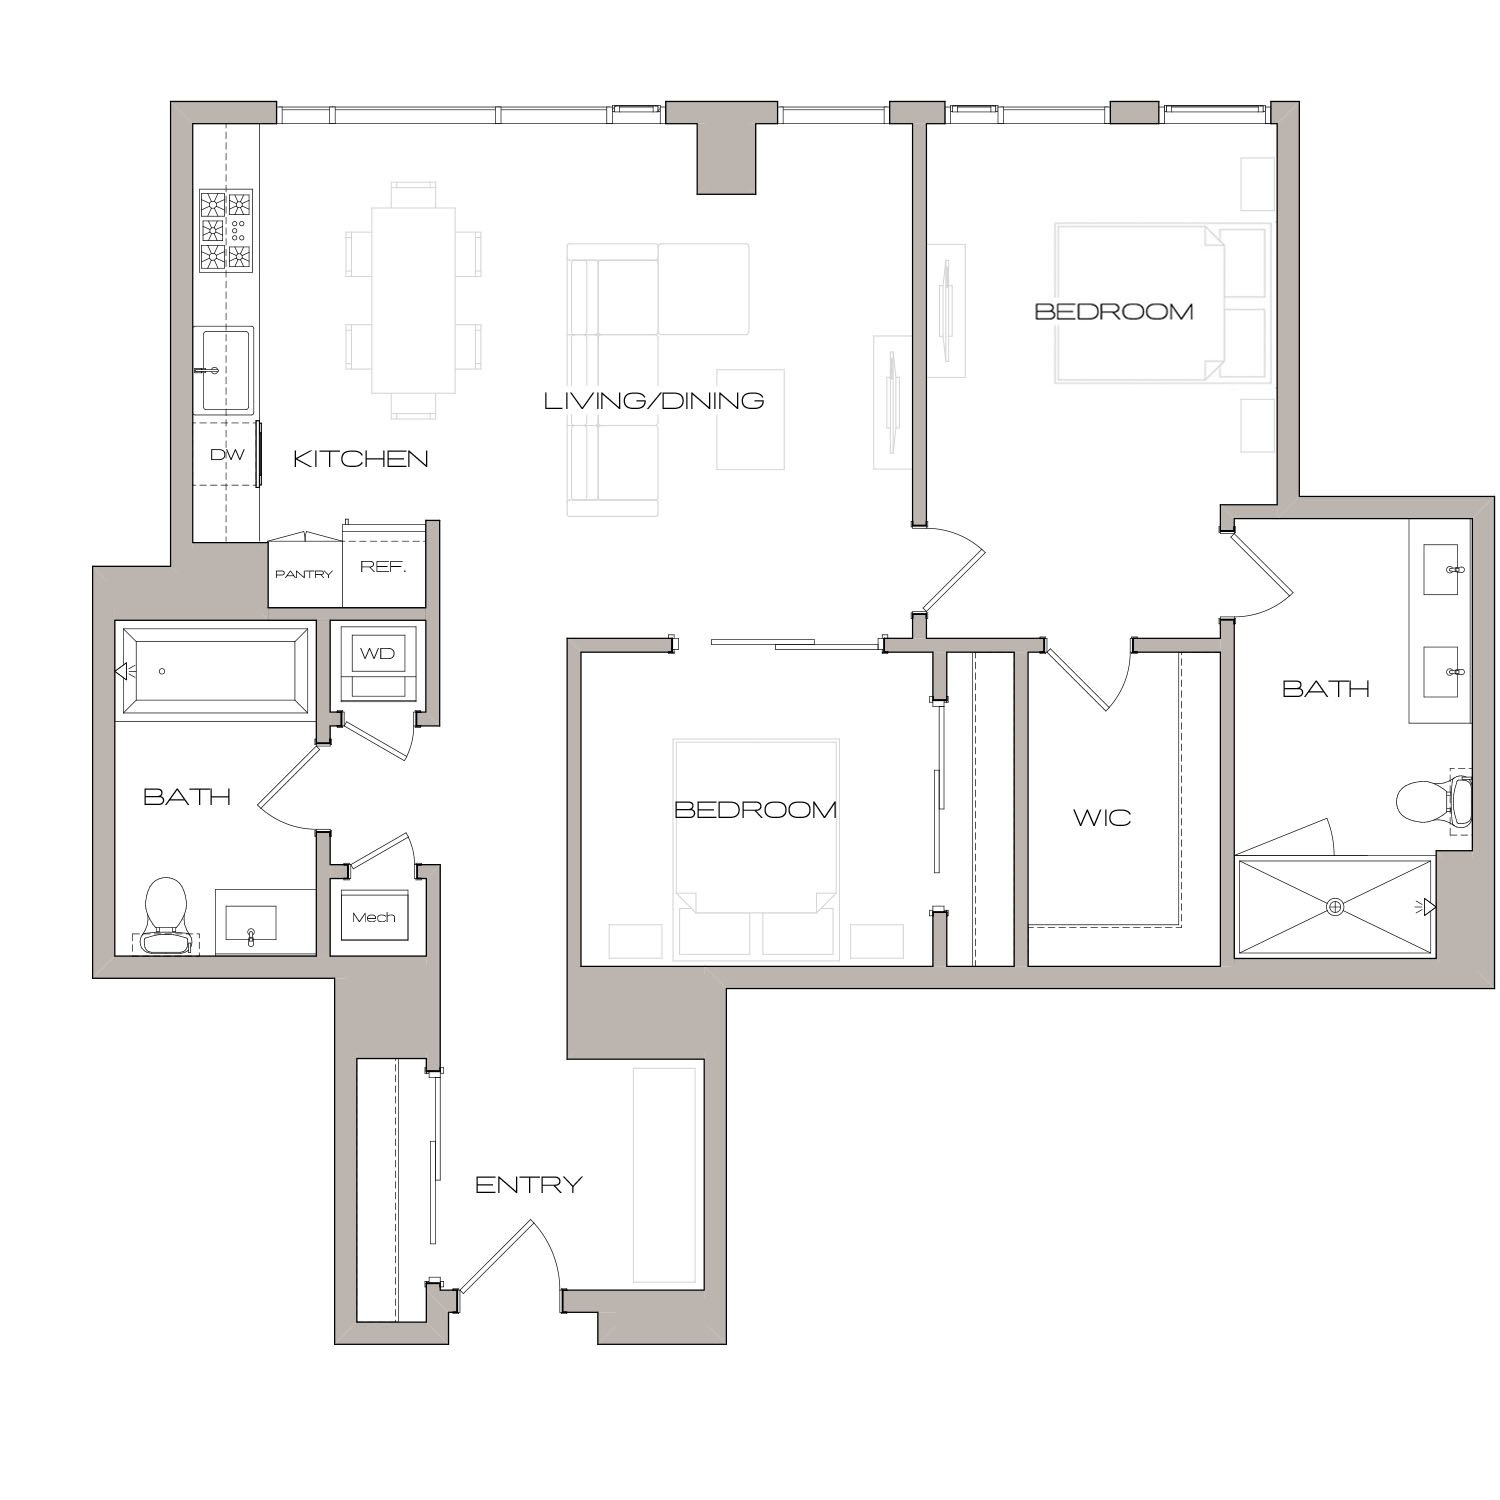 B 1 floor plan diagram. Two bedrooms, two bathrooms, an open kitchen and living area, and a washer dryer.